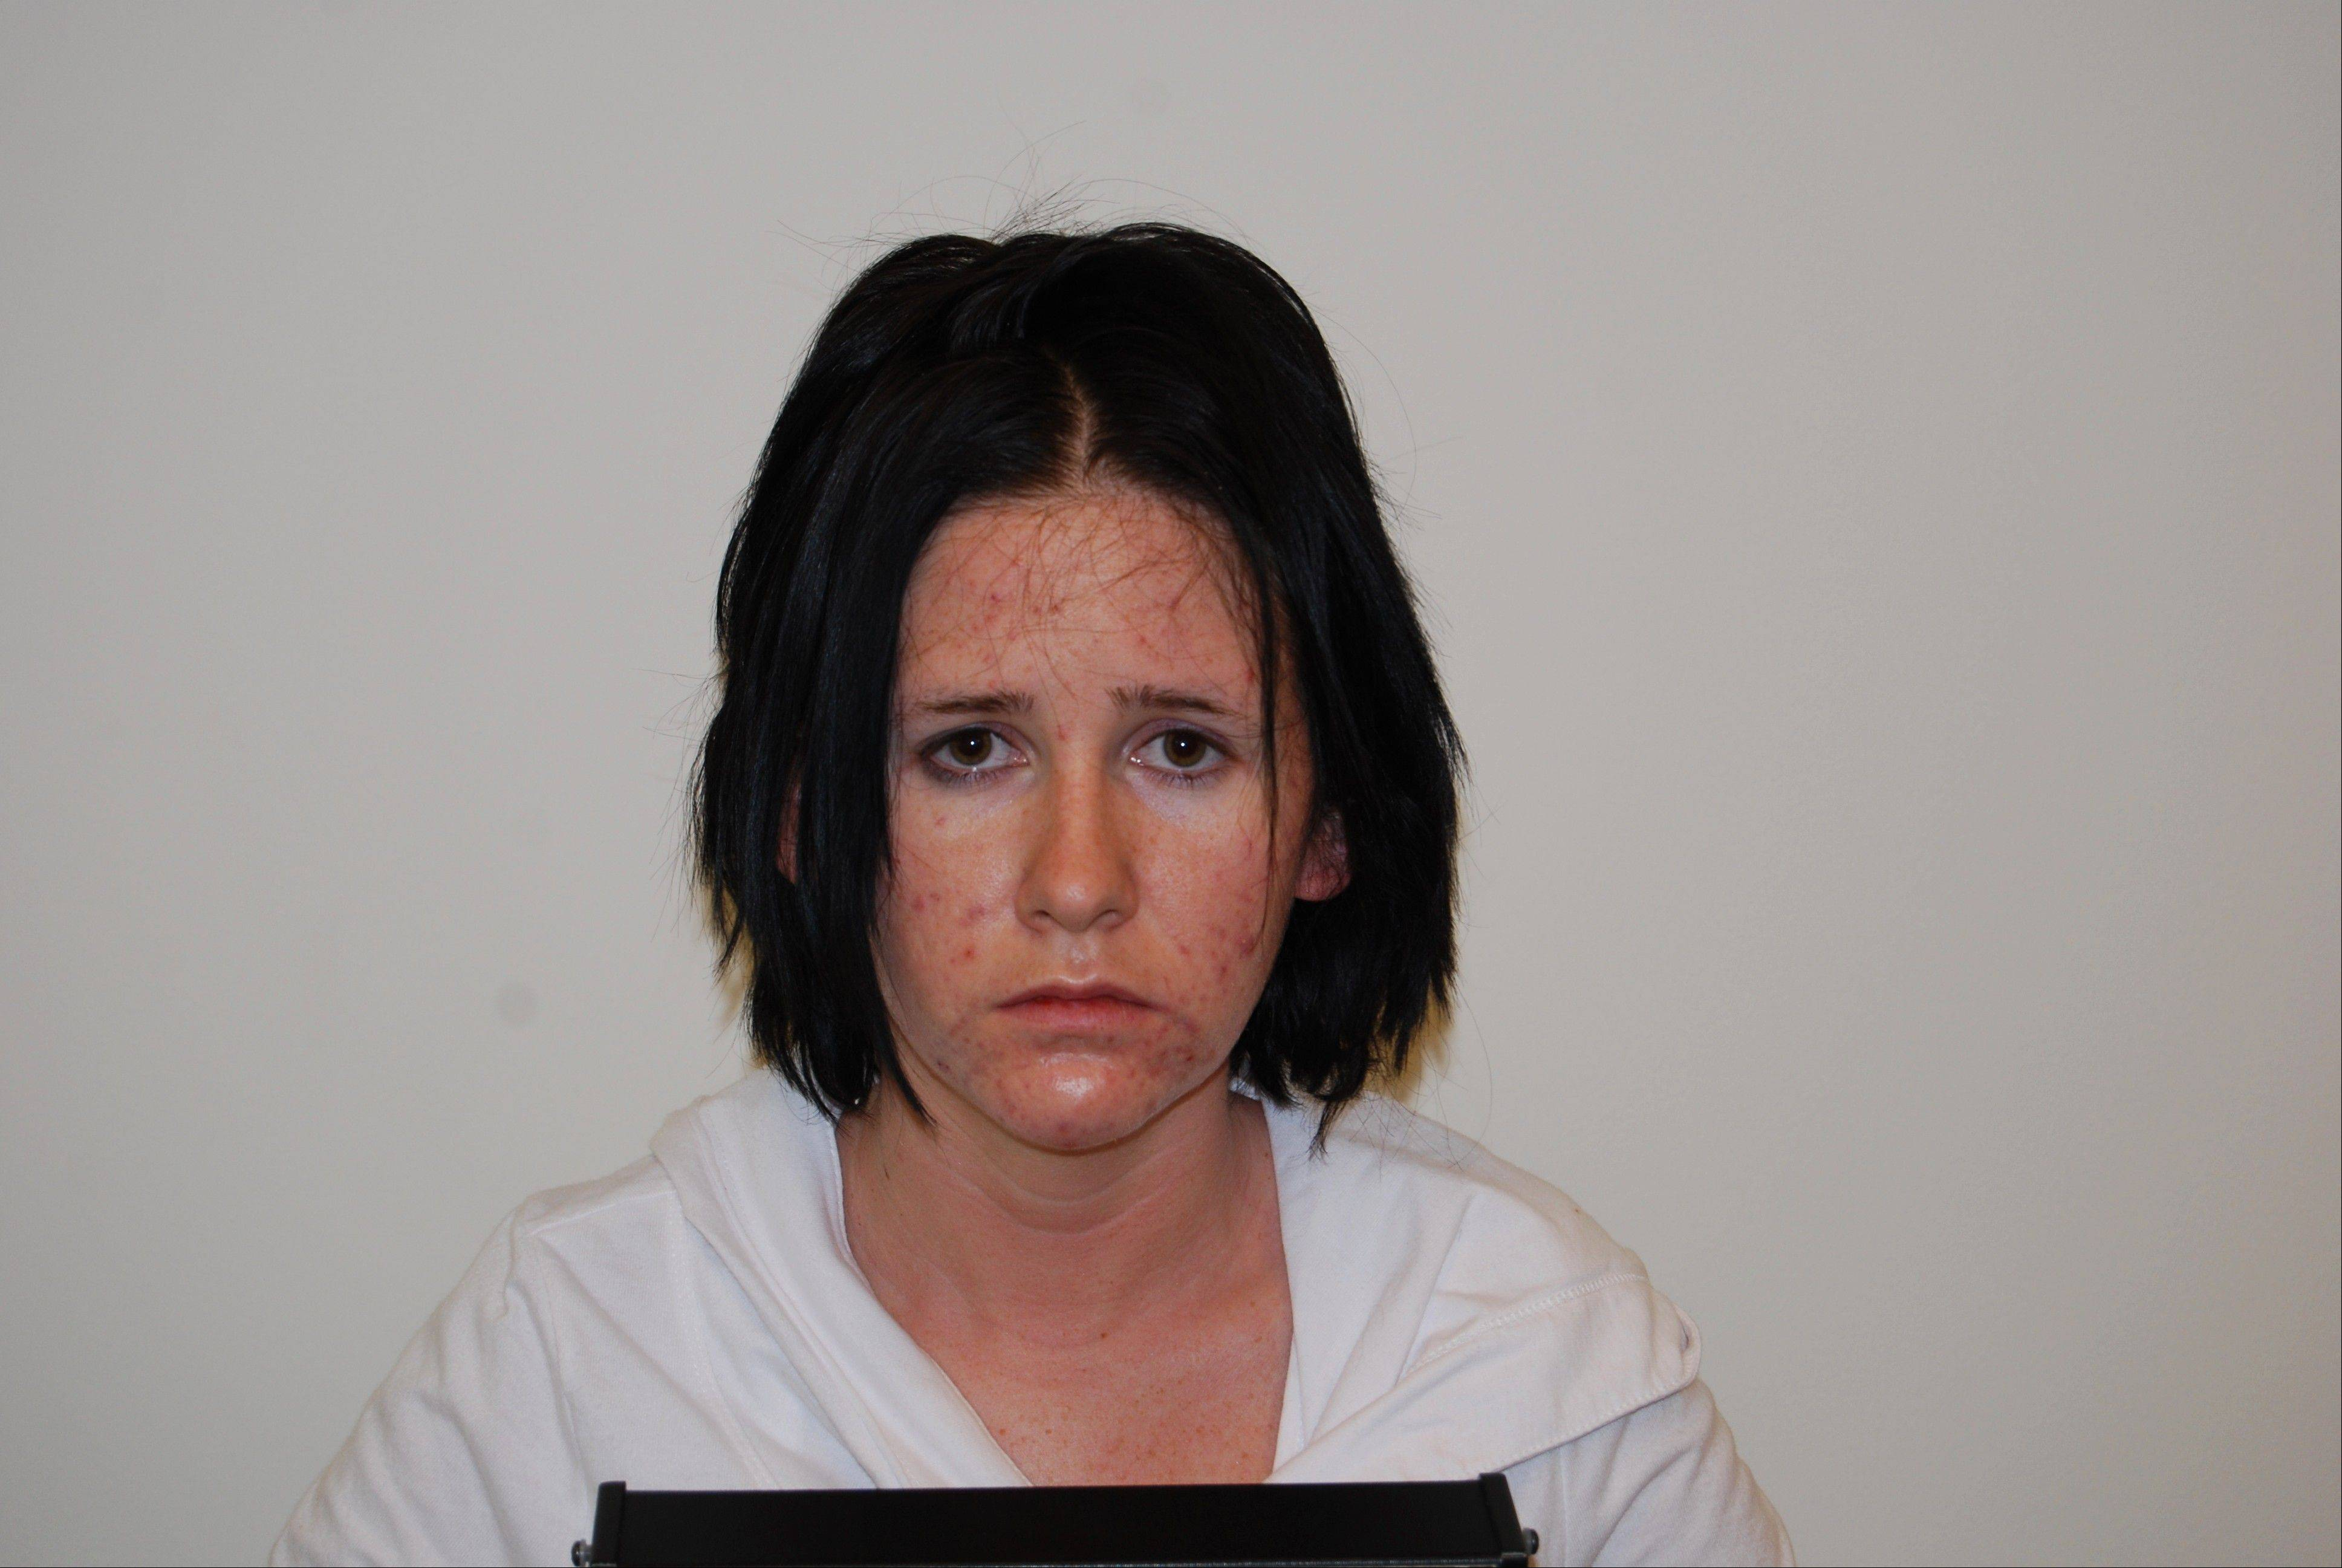 Melissa Calusinski, of Carpentersville, is charged with murder in the death of a Deerfield toddler.